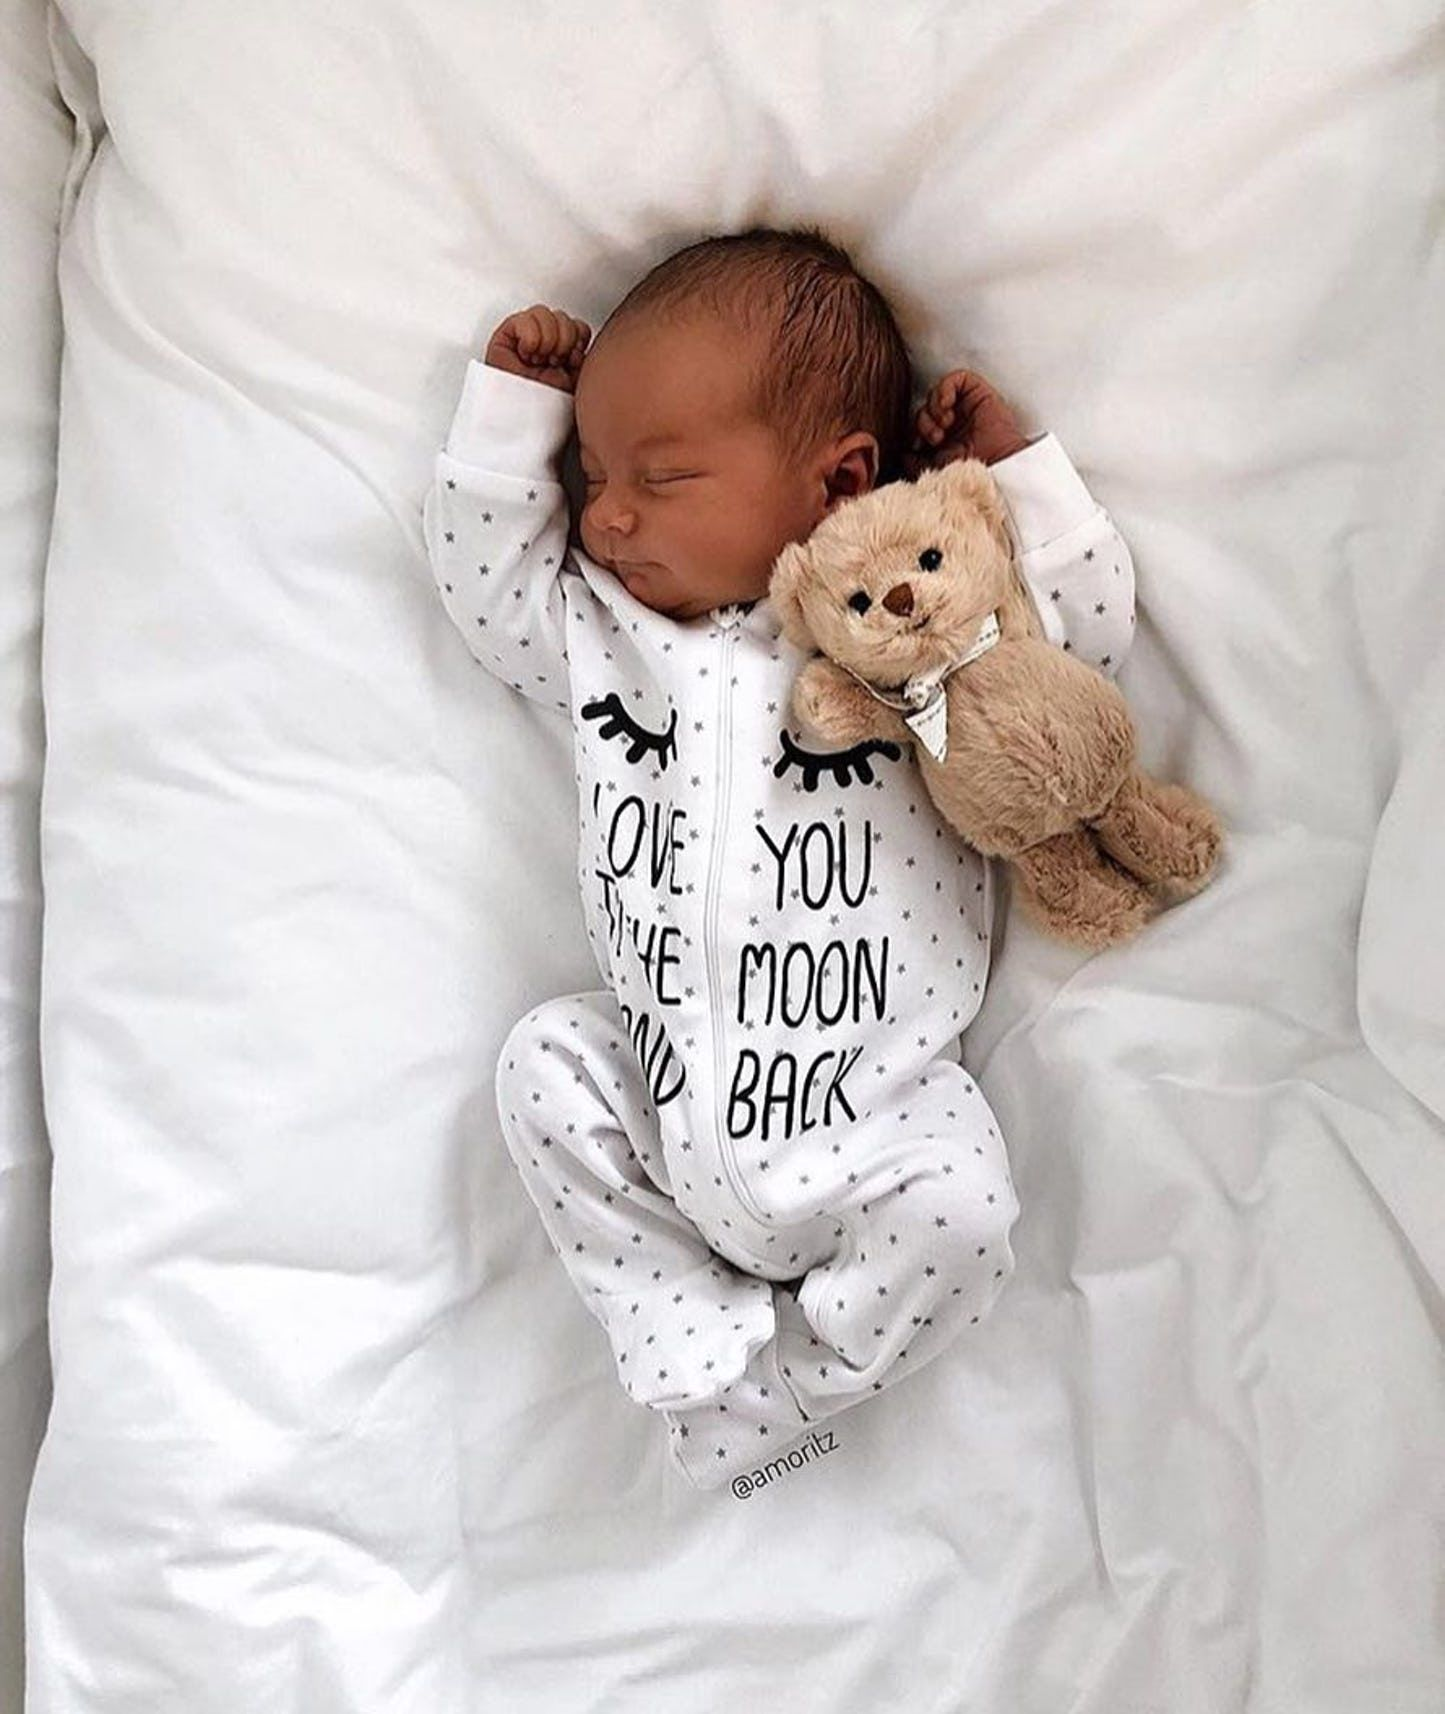 25 Stunning Baby Girl Names That Teachers Have Only Heard Once Cute Baby Clothes Baby Boy Newborn Cute Babies